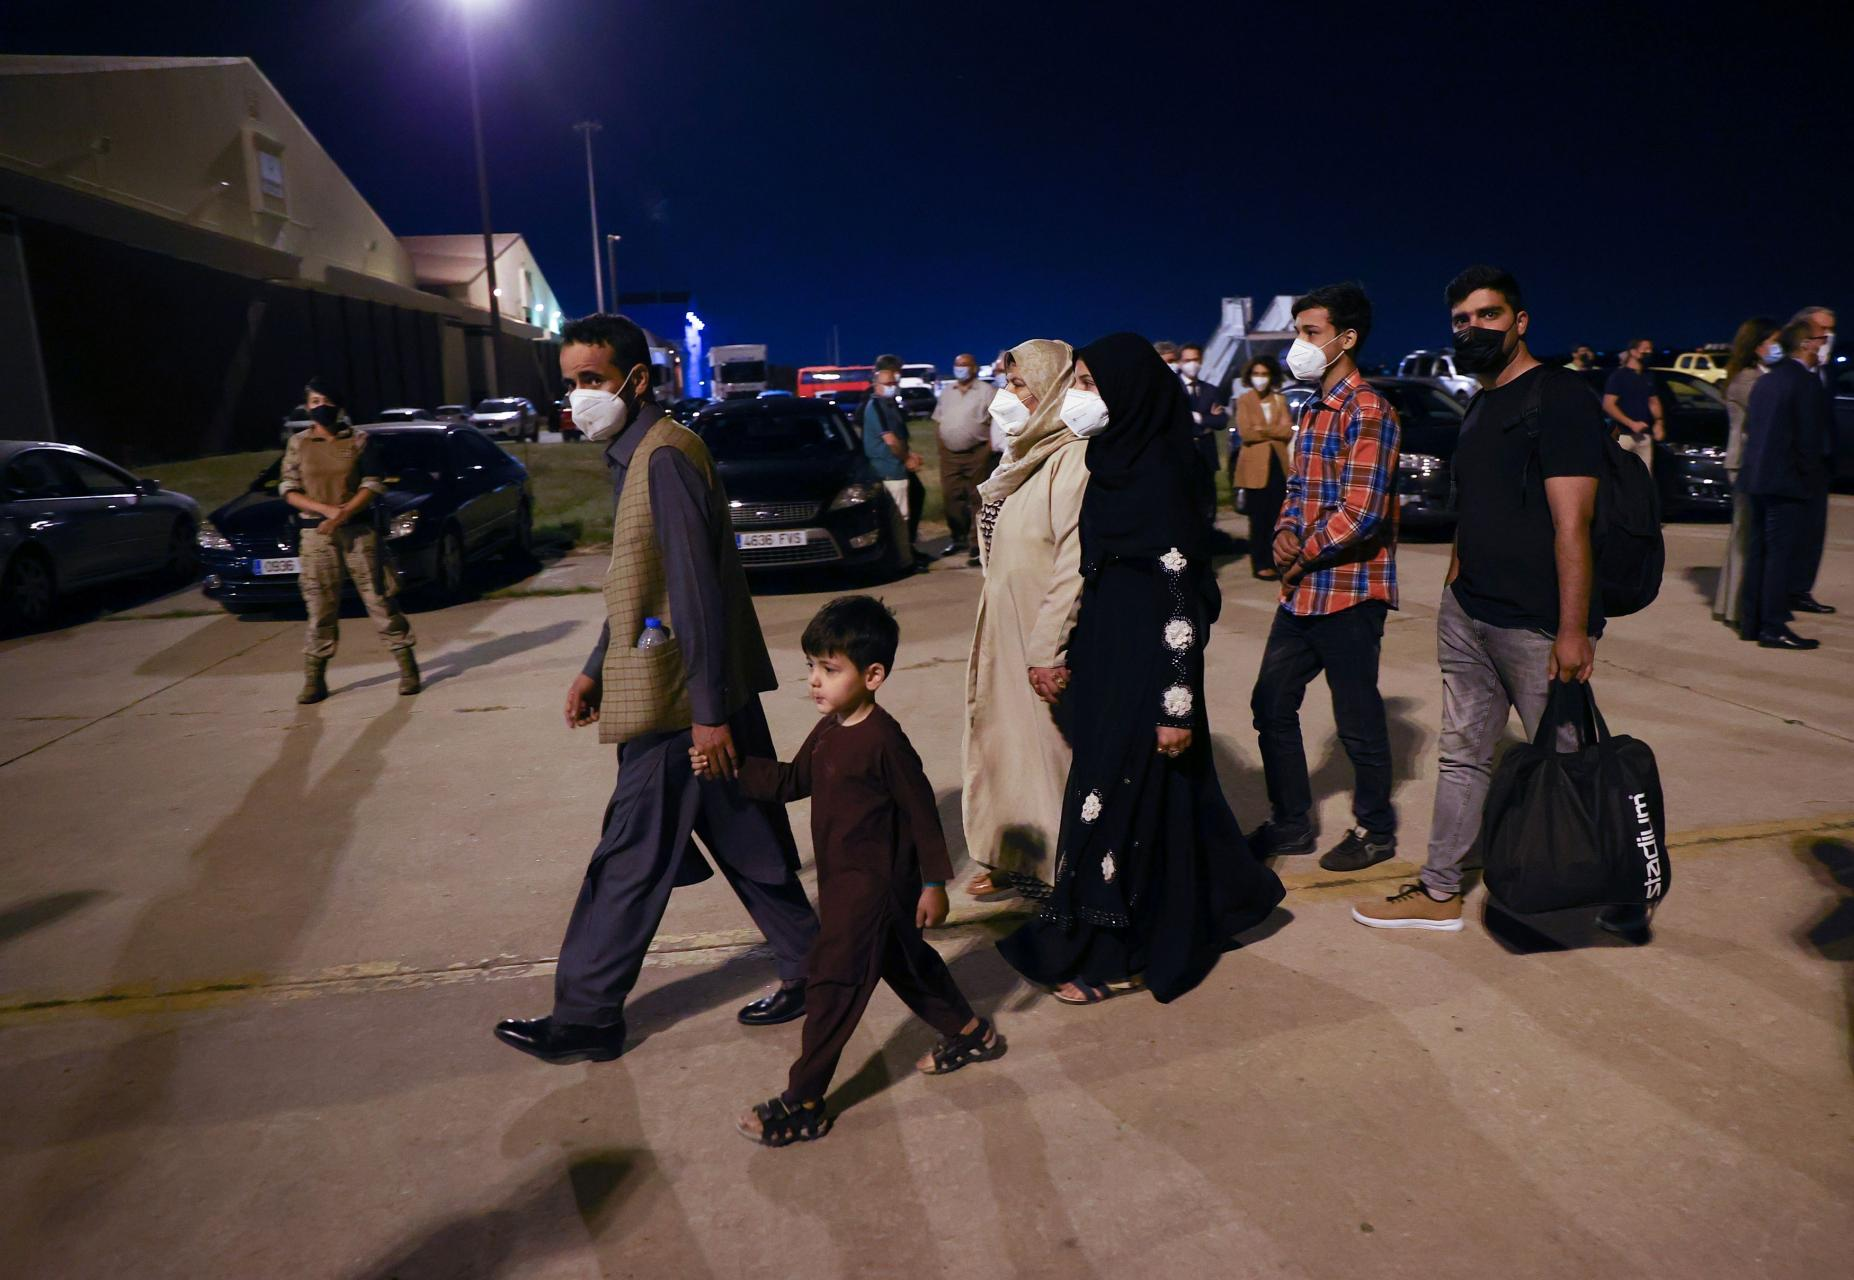 Spanish and Afghan citizens who were evacuated from Kabul arrive at Torrejon airbase in Torrejon de Ardoz